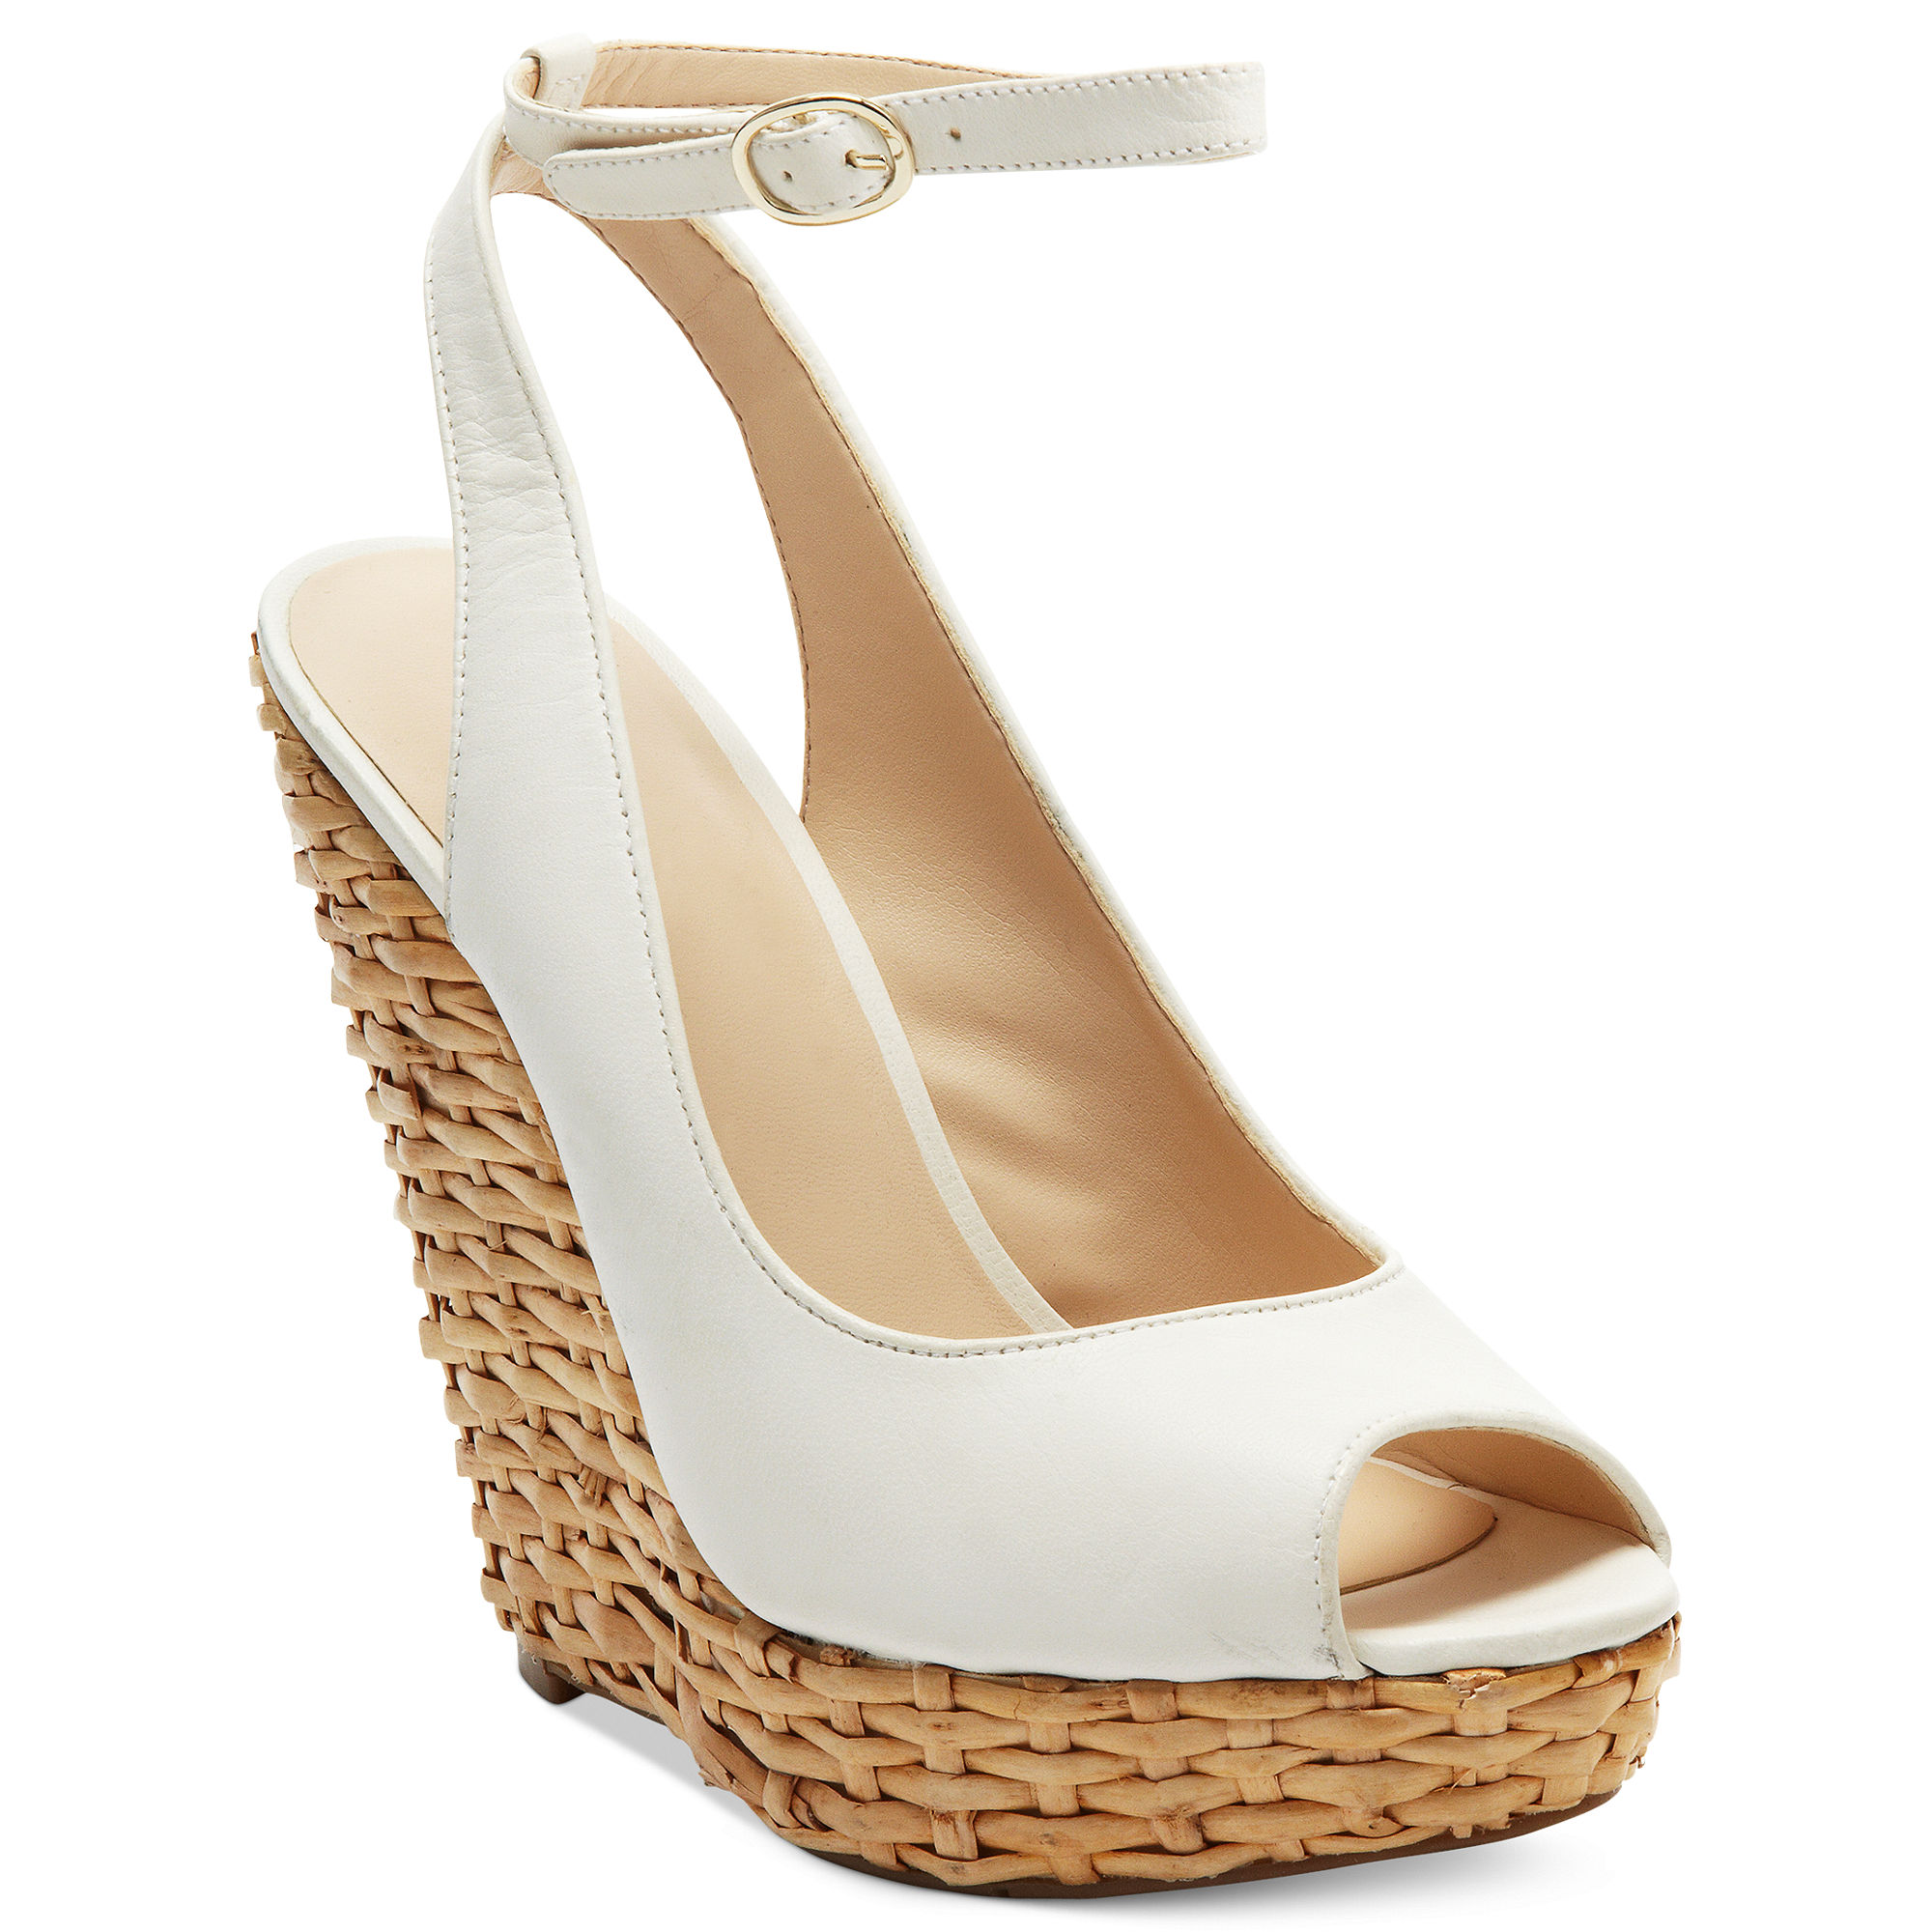 Nine West White Wedge Shoes